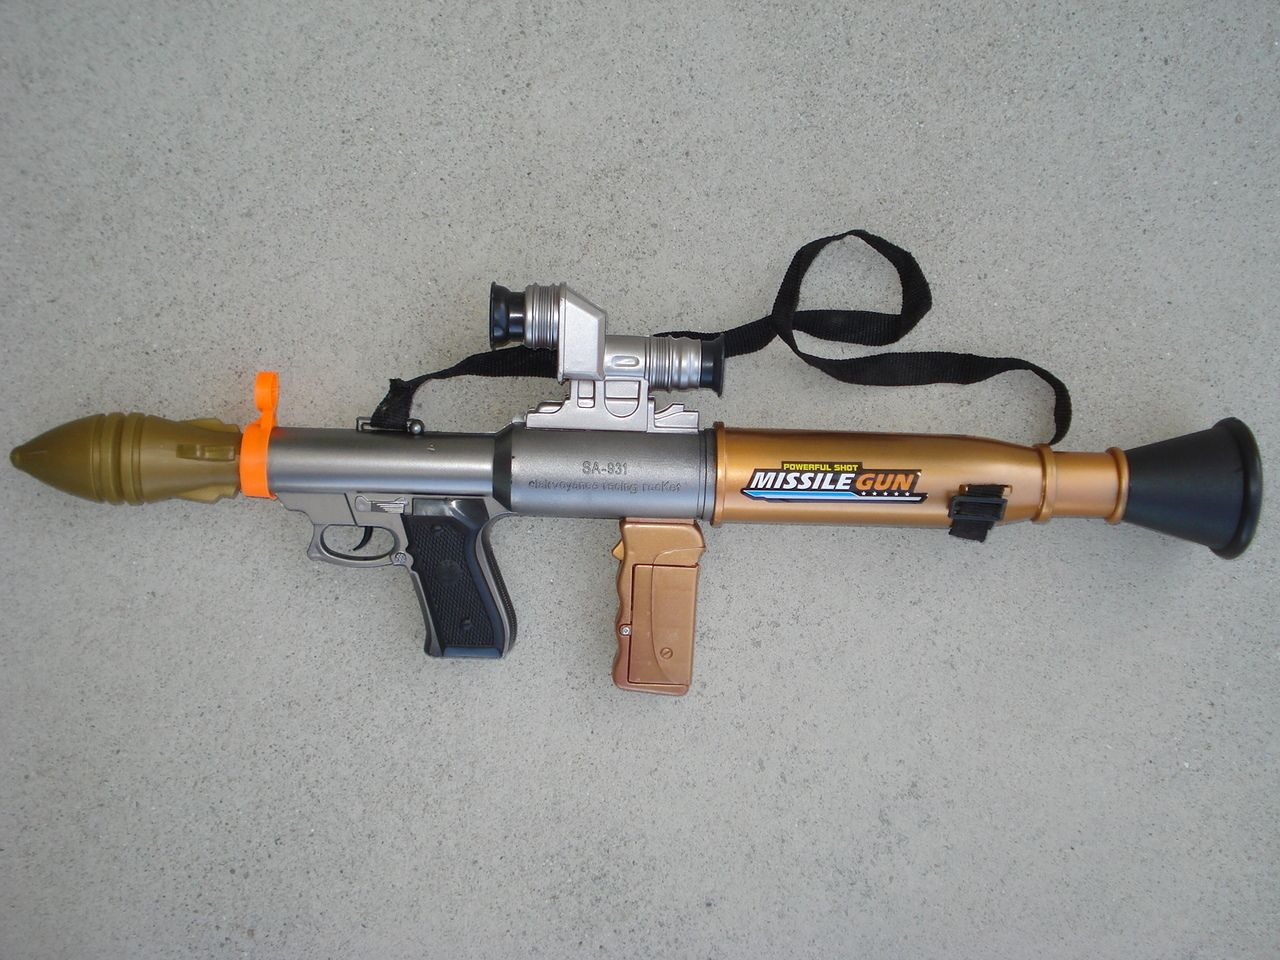 toygunzone bazooka missile gun sounds lights 23 with grenade